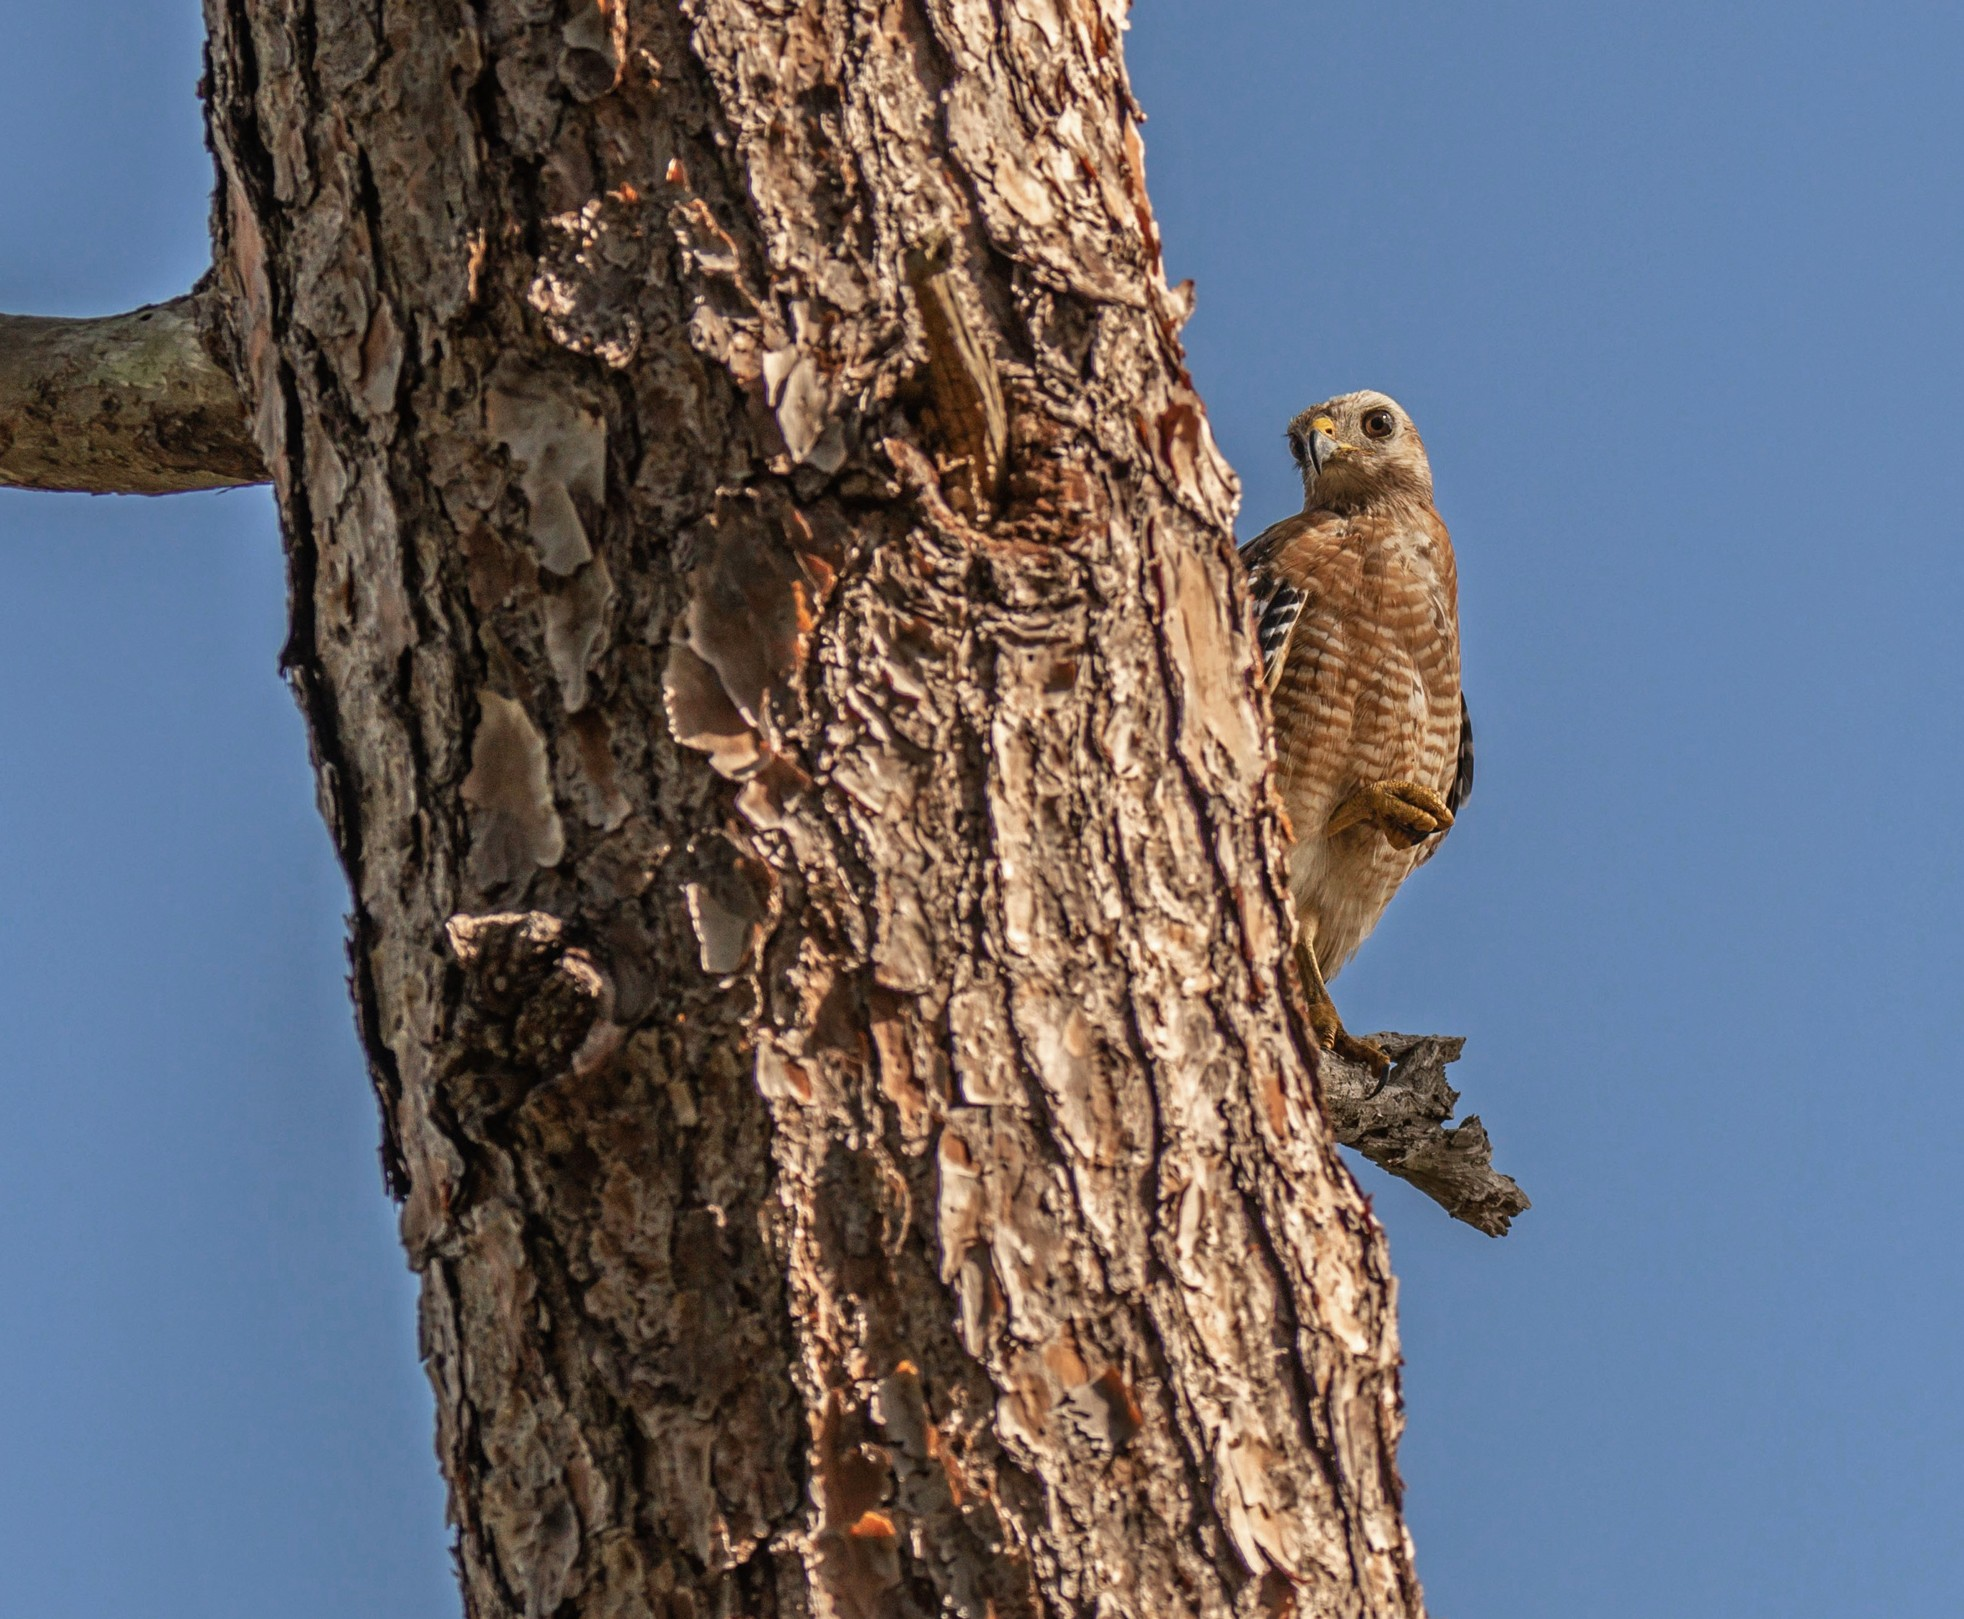 717-Red-Shouldered-Hawk-cvt-fn.jpg